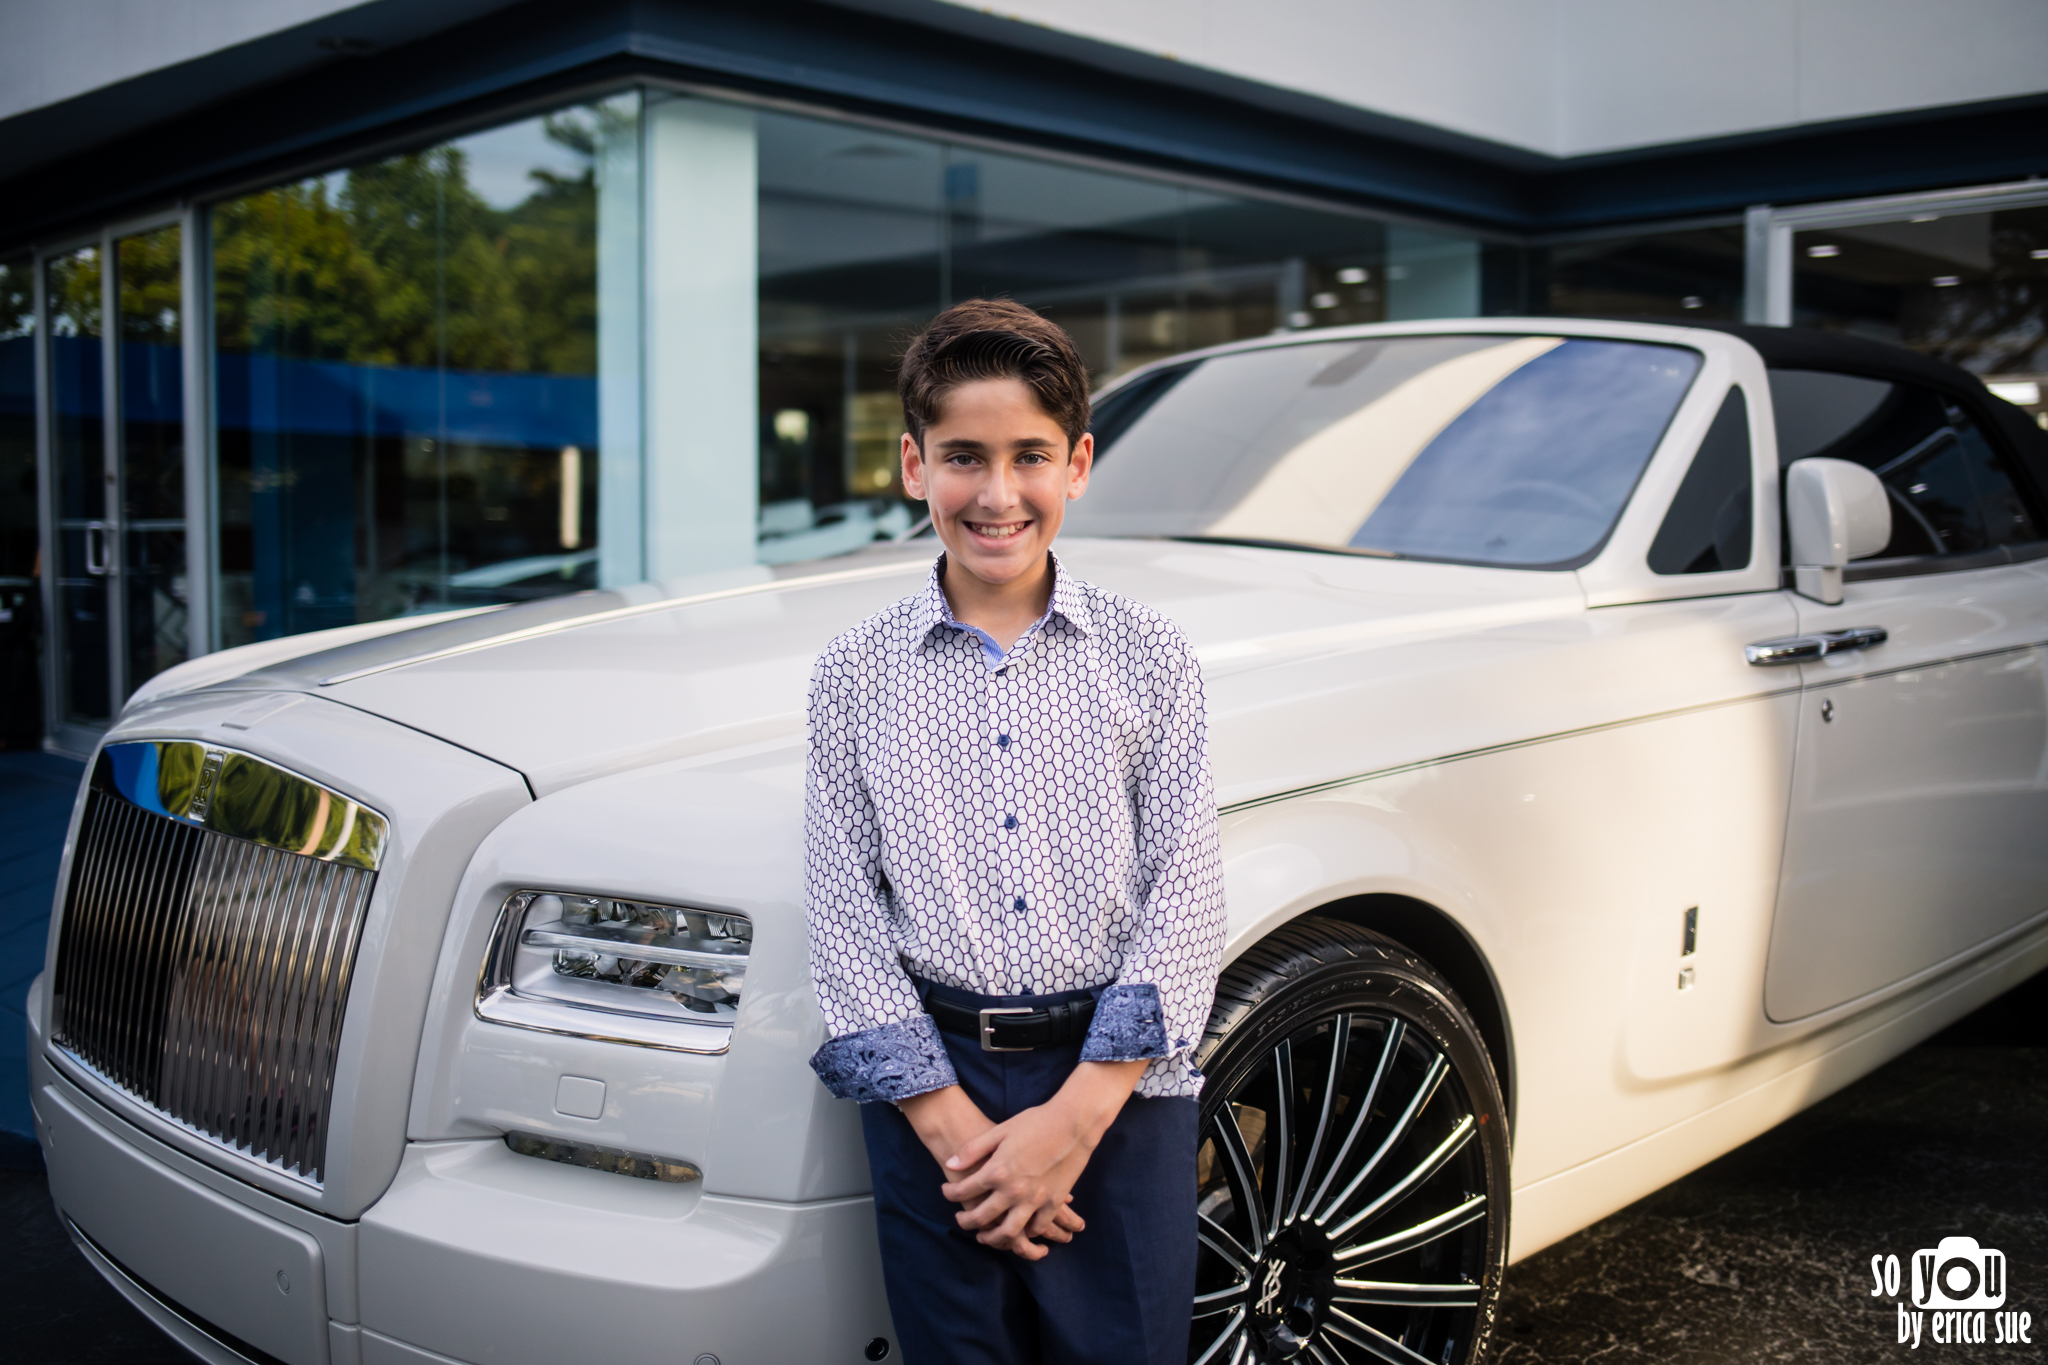 so-you-by-erica-sue-mitzvah-photographer-collection-luxury-car-ft-lauderdale-4962.jpg